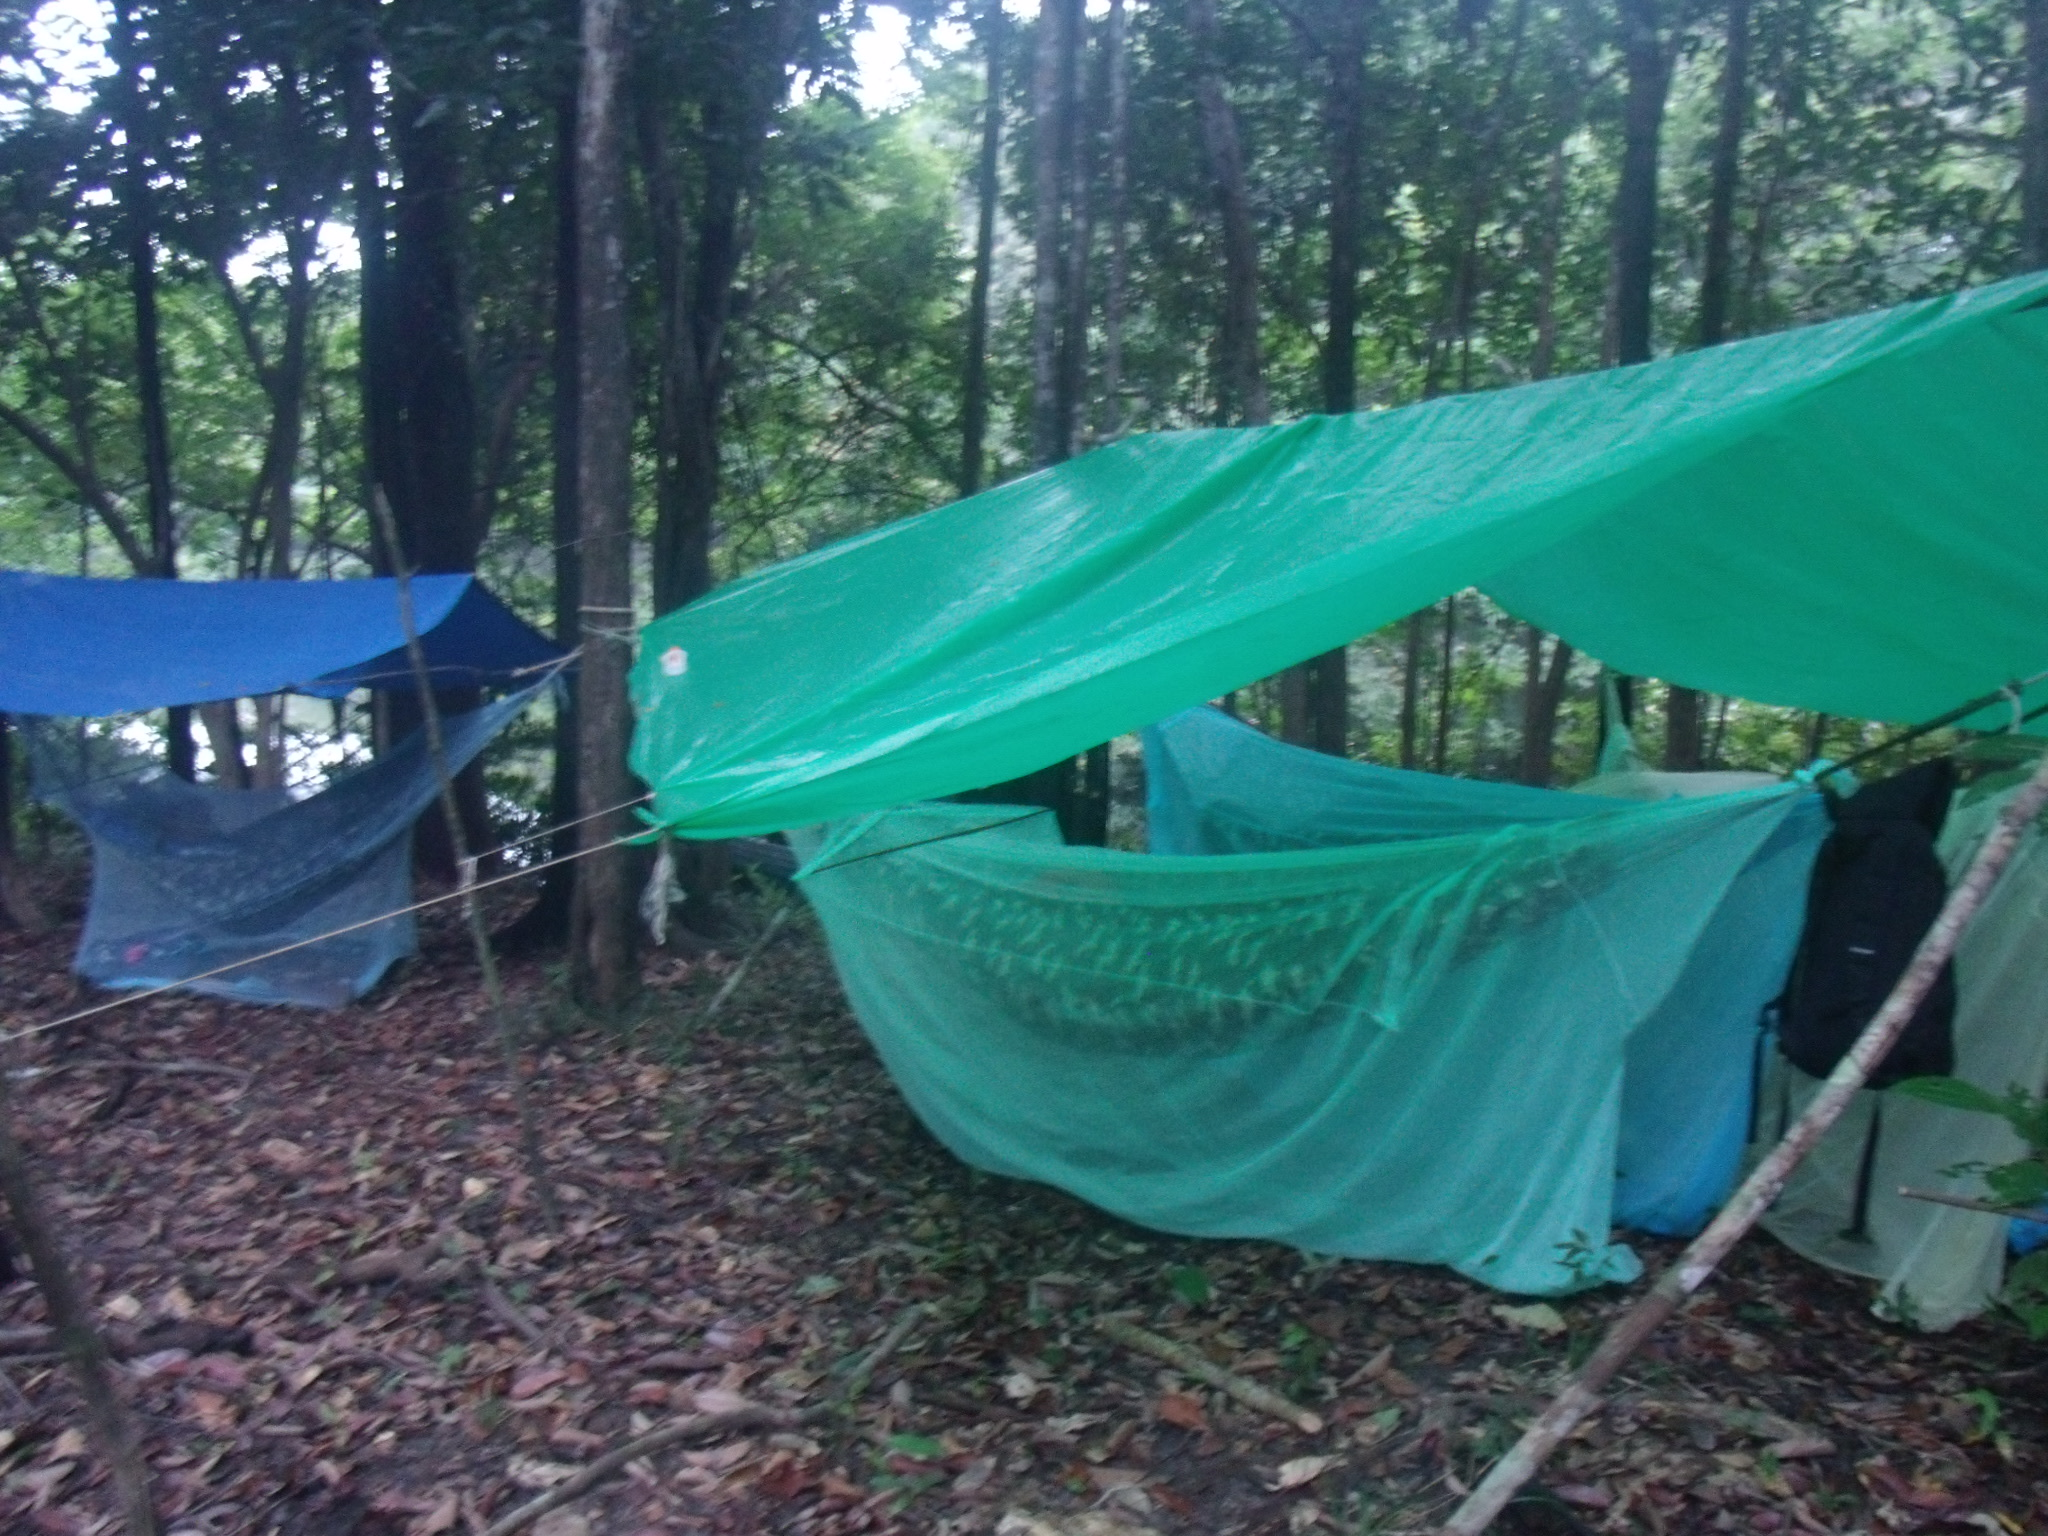 Hammock tents with mosquito nets